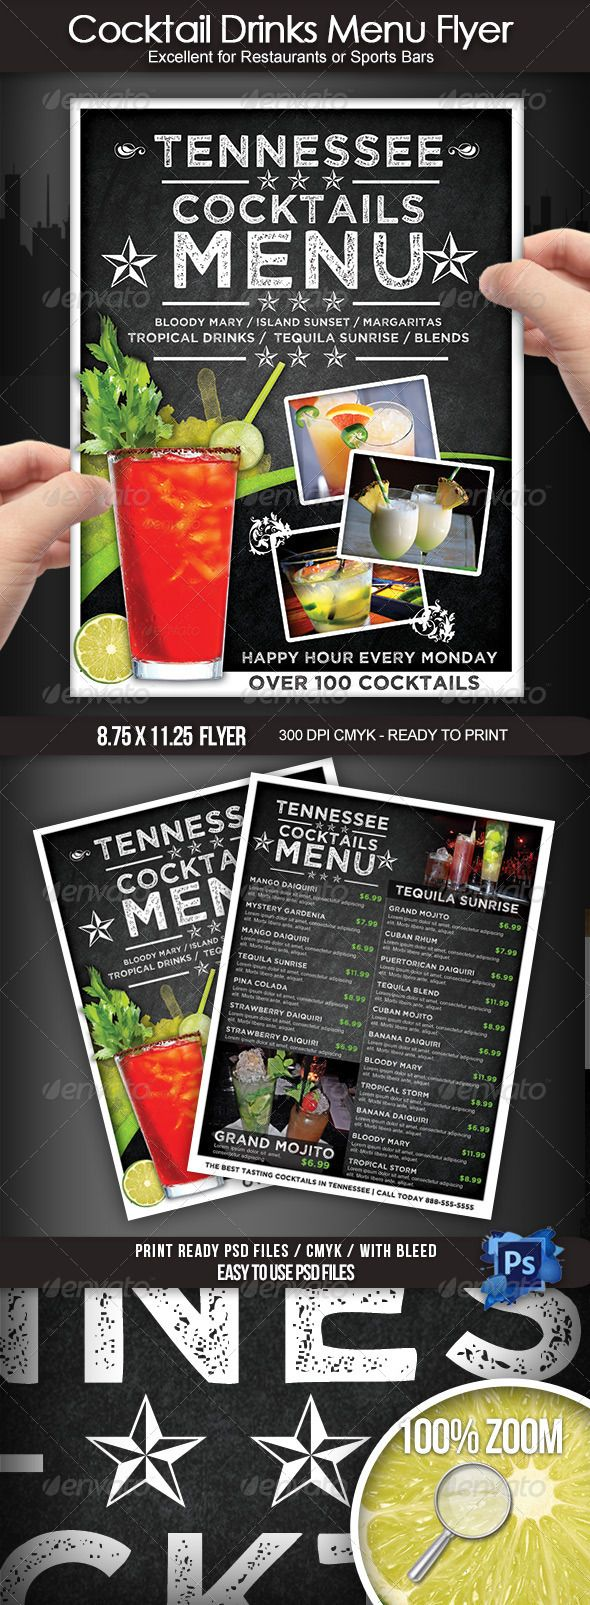 Cocktail Drinks Menu Flyer – Drinks Menu Template